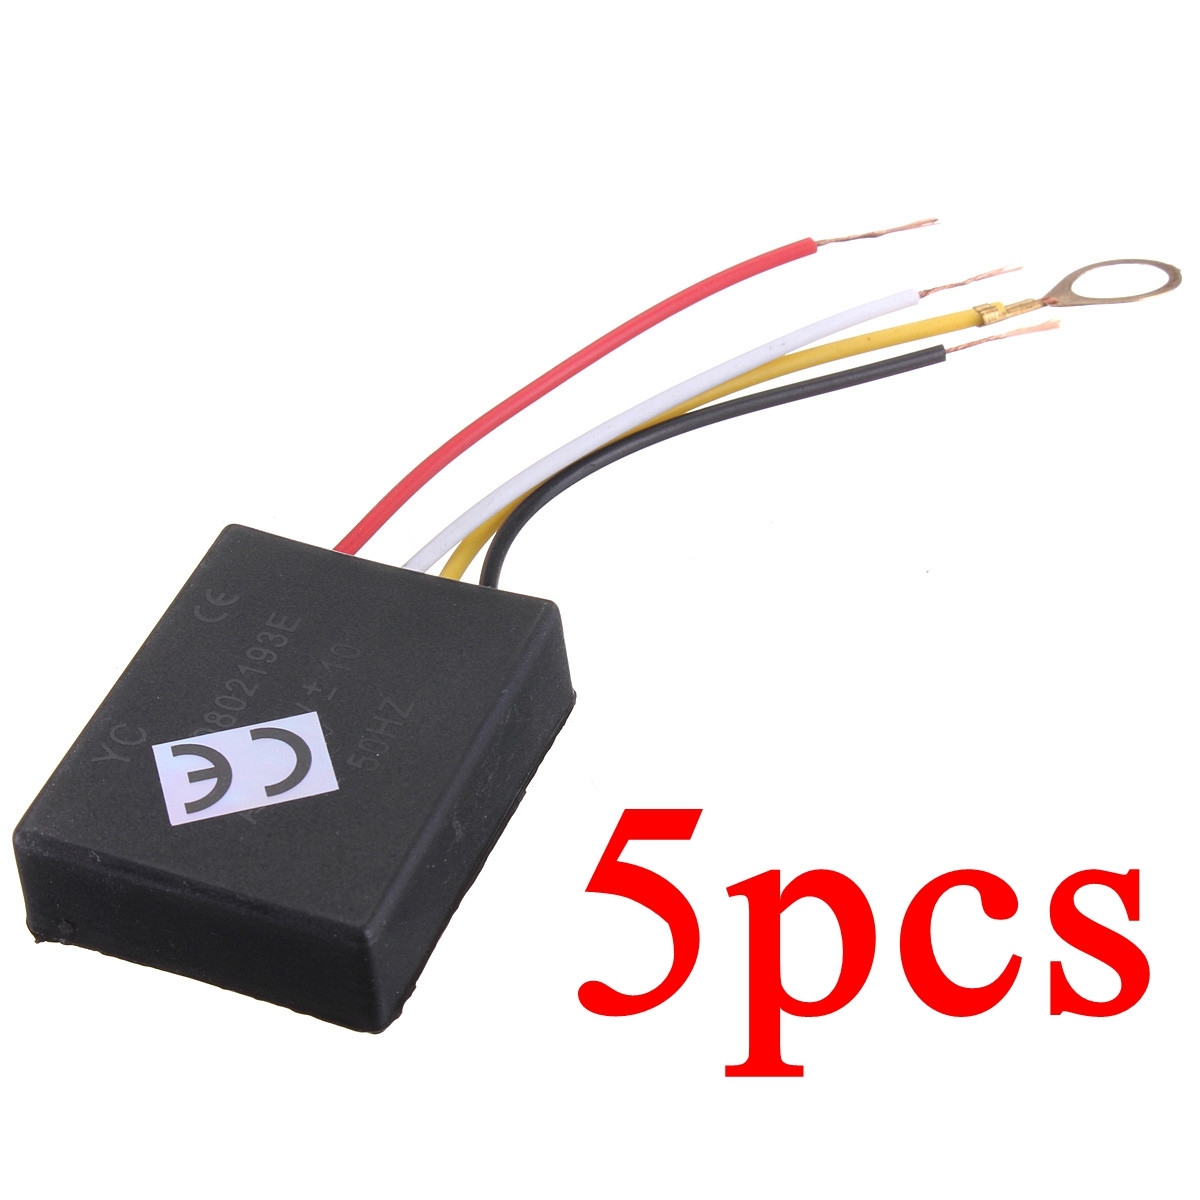 5Pcs AC110V-240V 3-Way Touch Switch Control Sensor Bulb Dimmer Parts For Table Desk Light Lamp